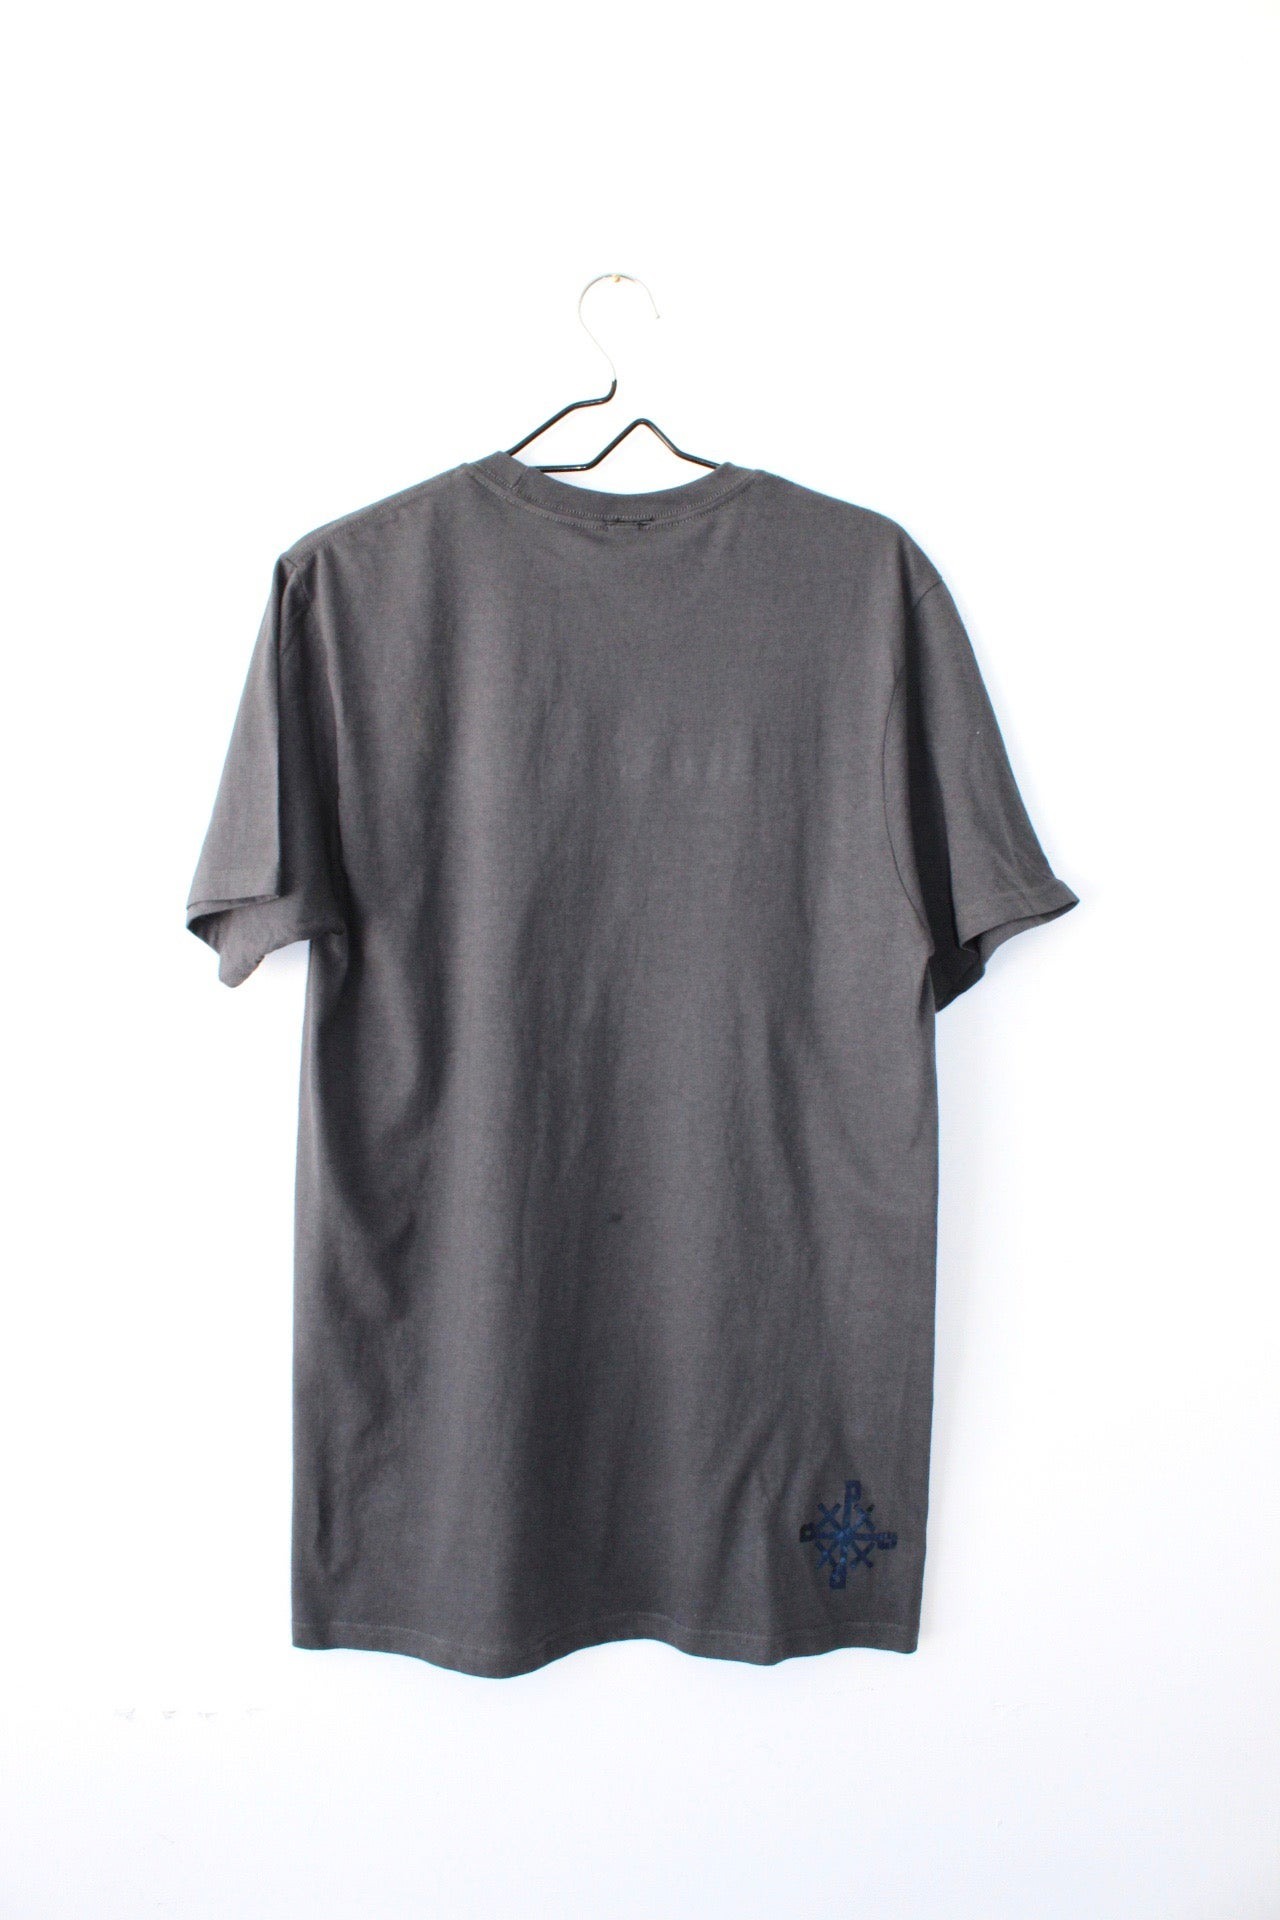 Image of stacked right tee in dark gray